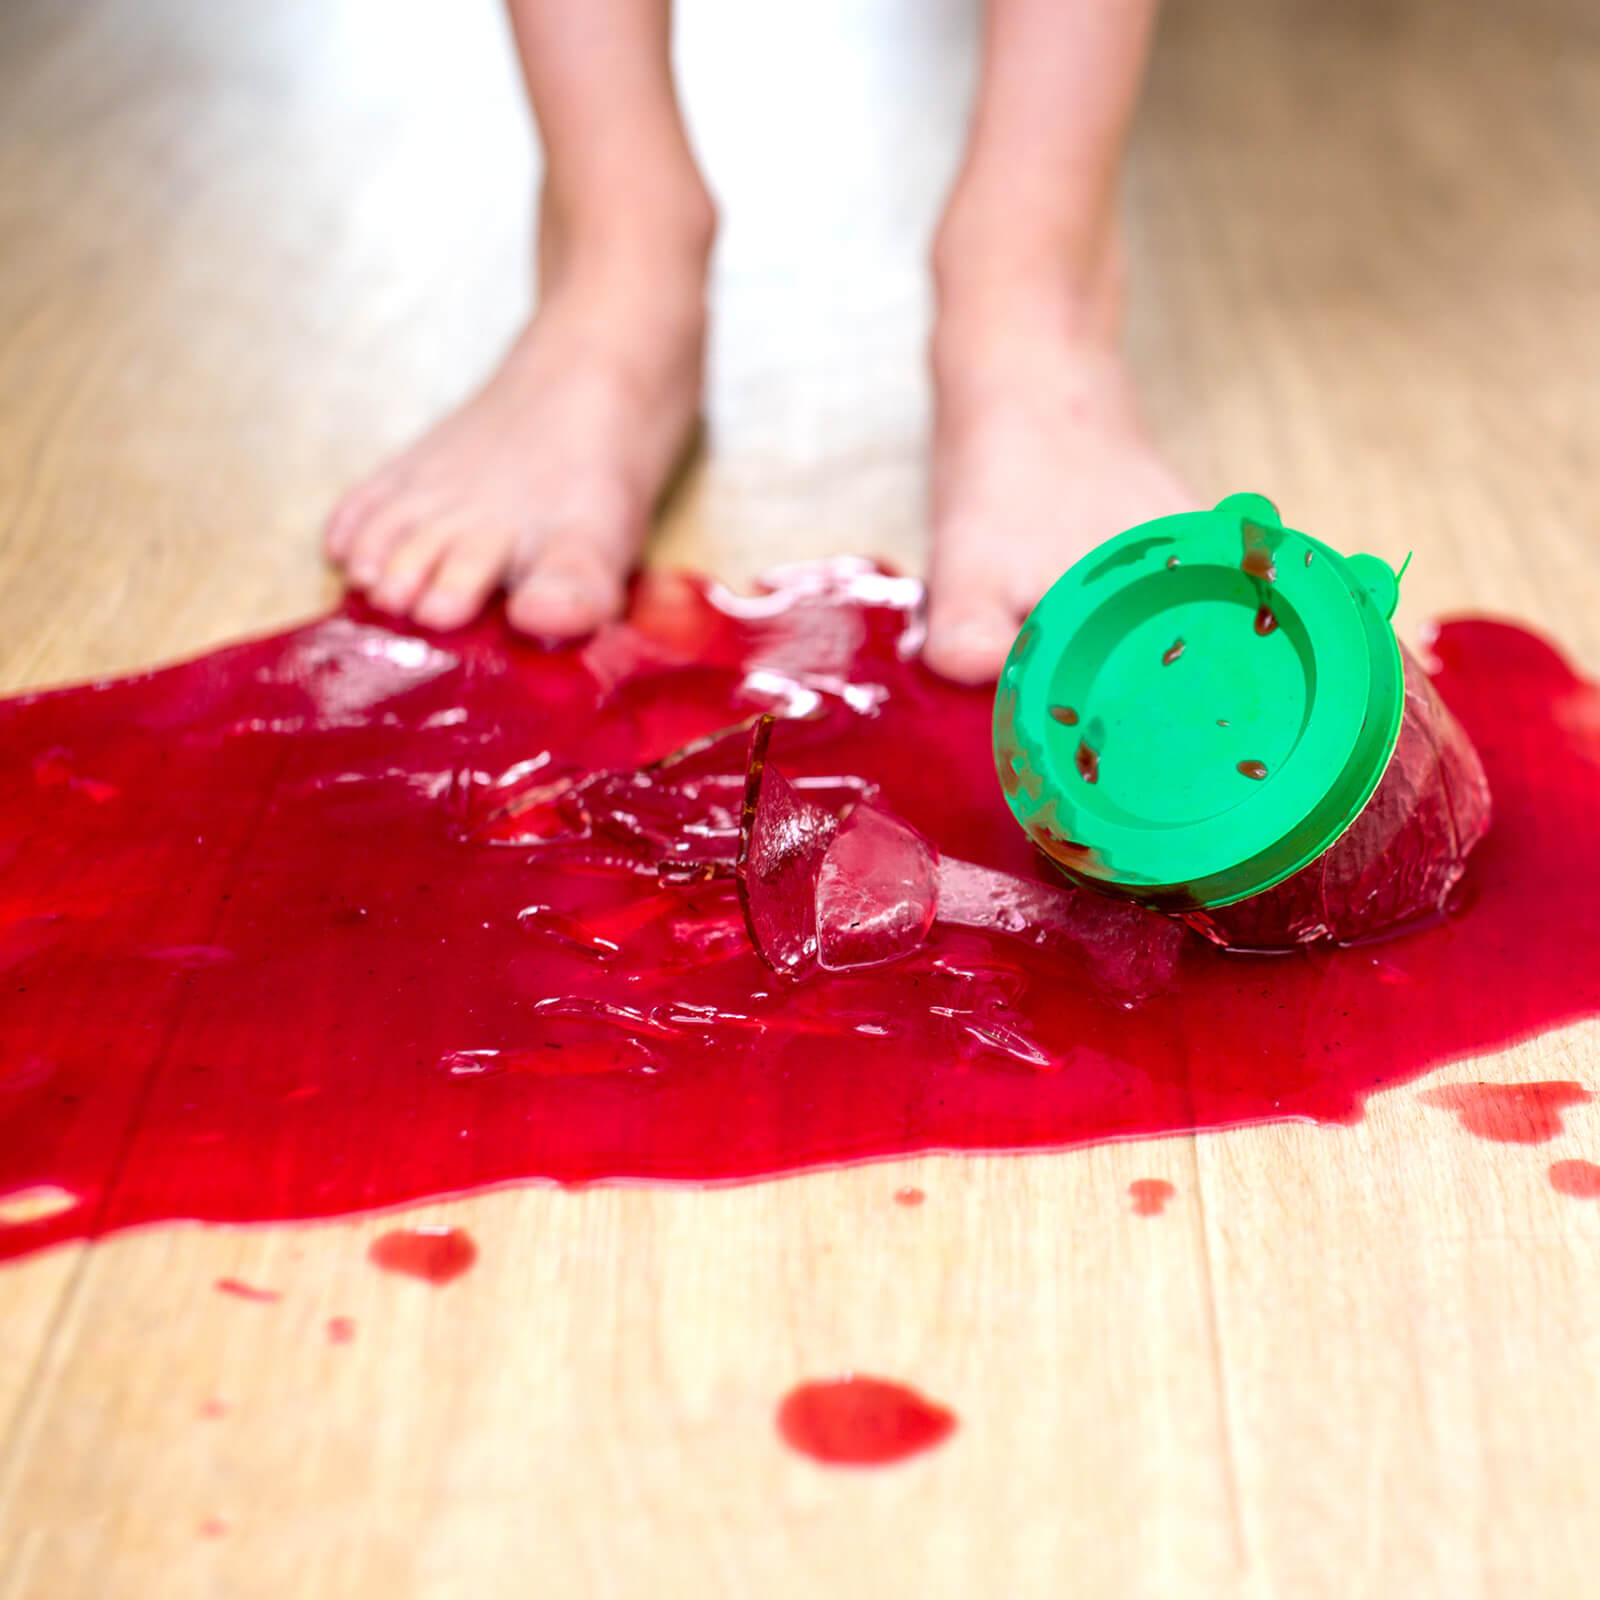 Remove common household stains without damaging your flooring | BMG Flooring & Tile Center